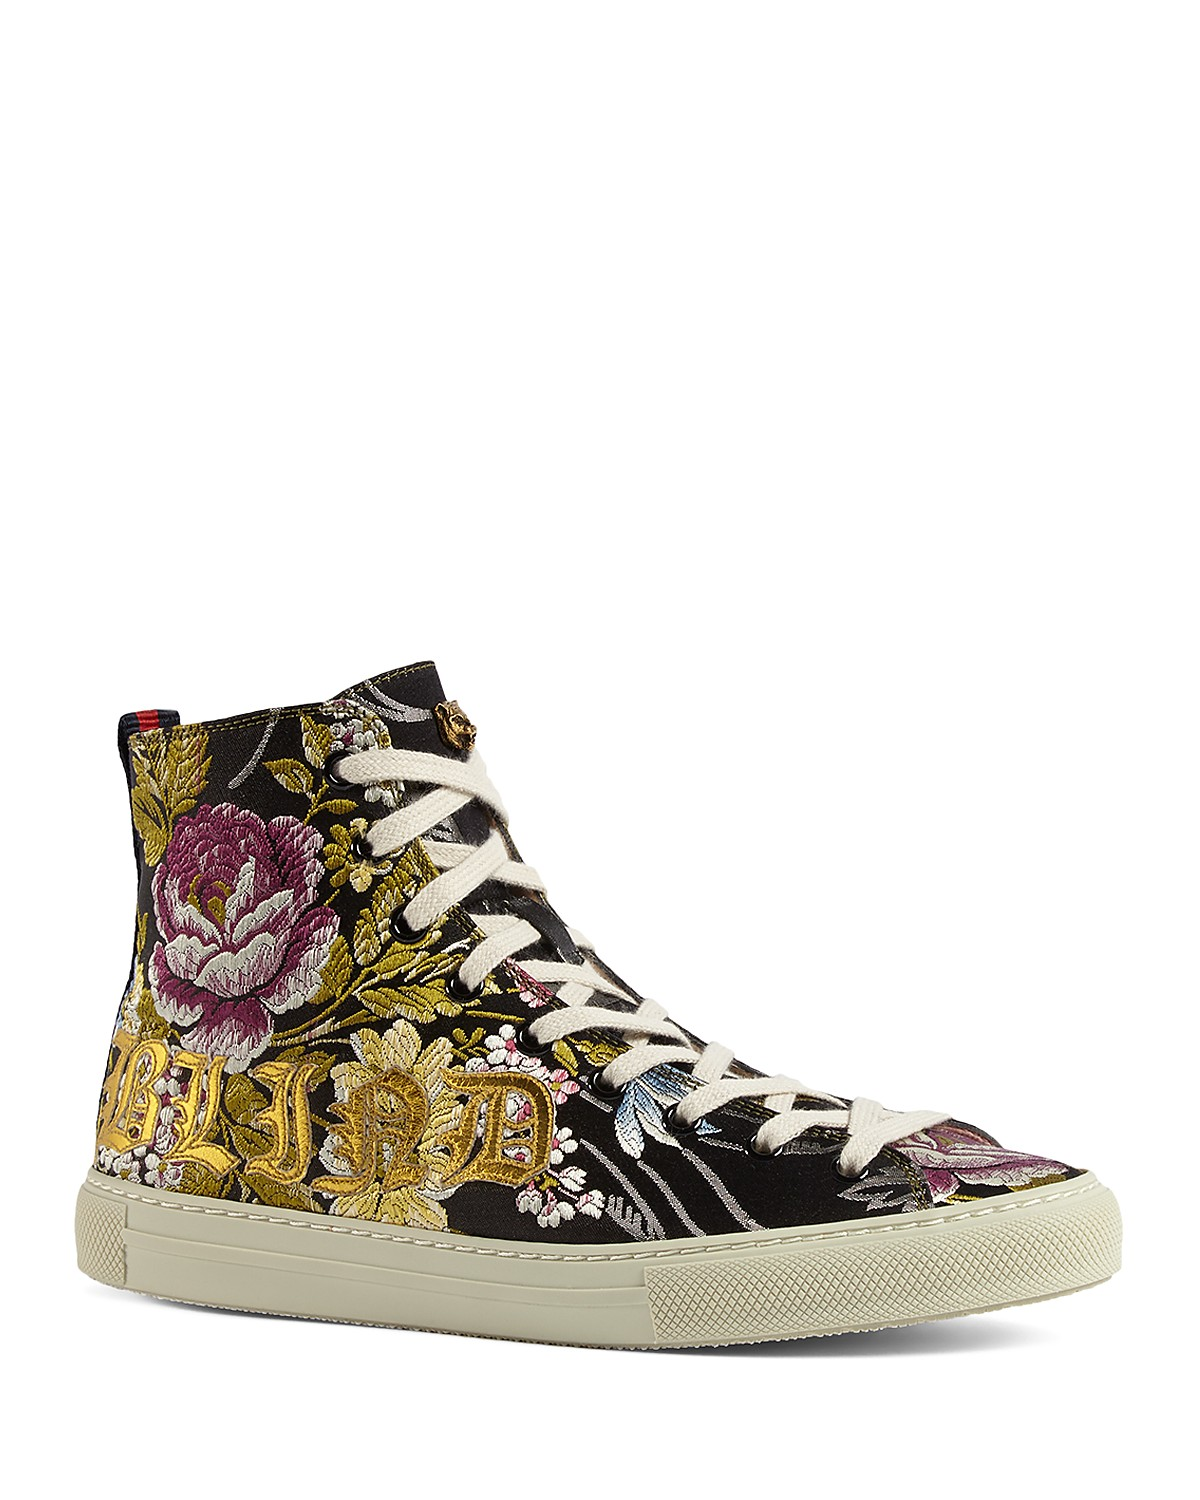 Gucci Blind For Love Floral Embroidered High-Top Sneakers GvW7BT4Z